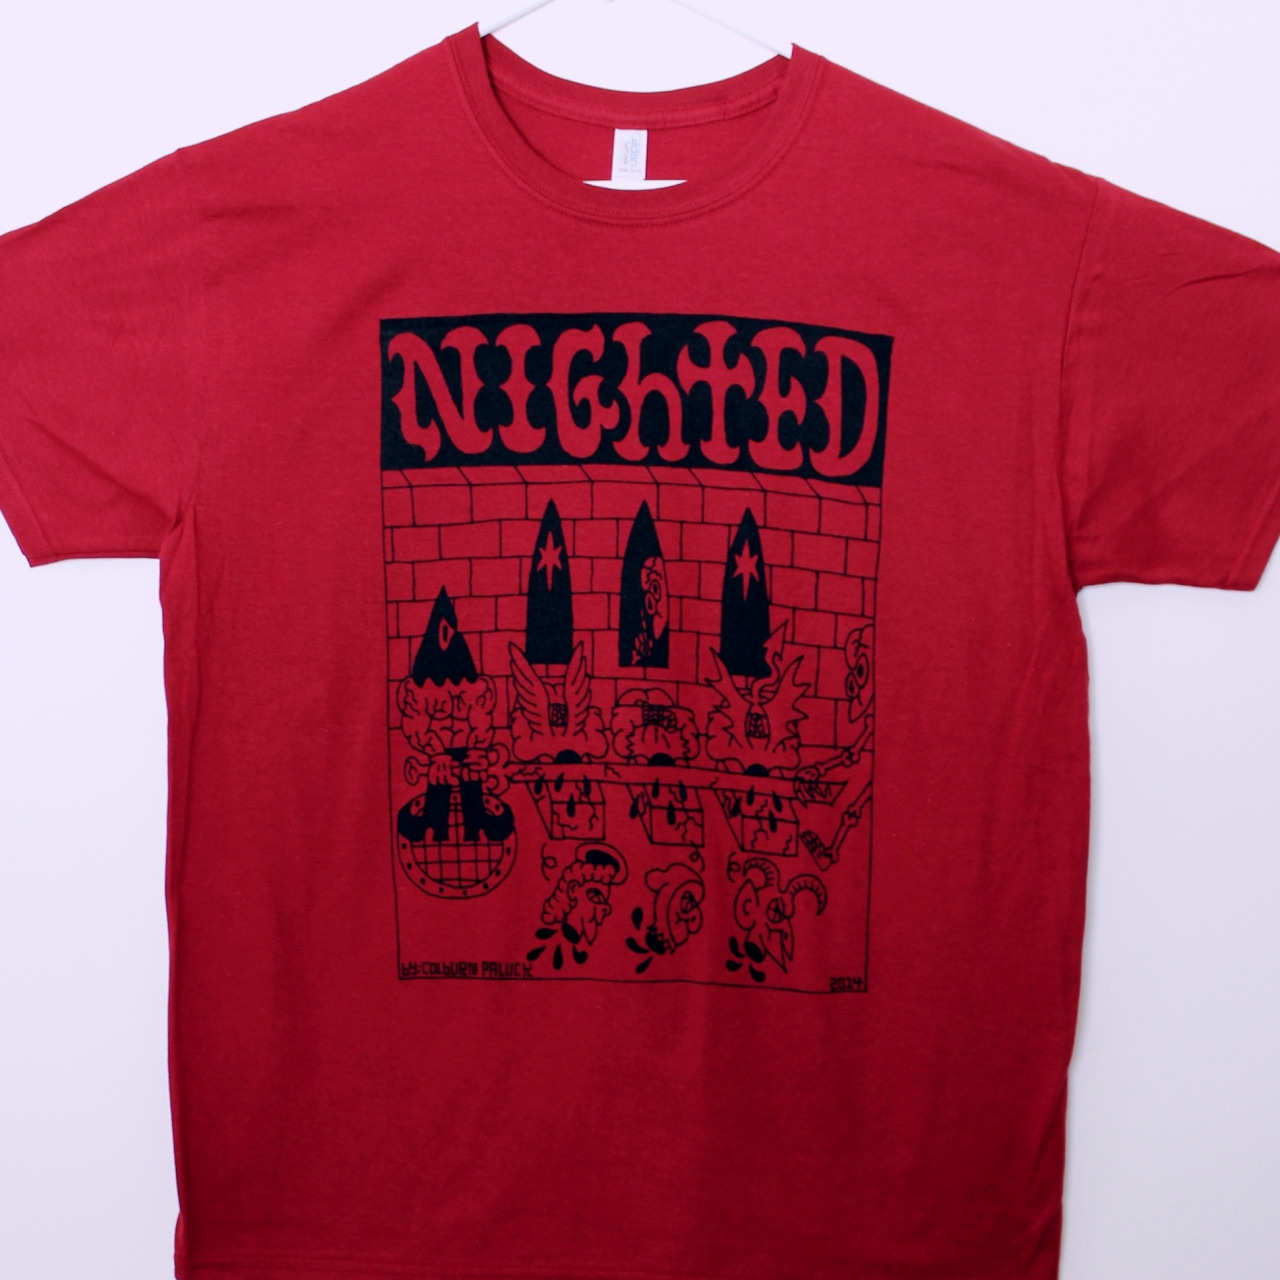 NIGHTED // Colburn Paluck T-Shirt    Red Gildan Softstyle t-shirt with an original illustration by Colburn Paluck on the front.  Limited run, up now in the   NIGHTED Store  .